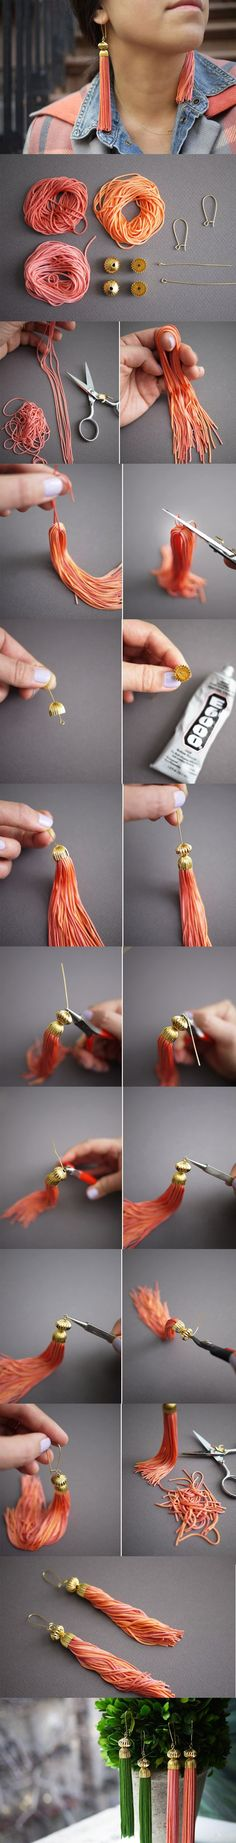 #diy tassel earrings